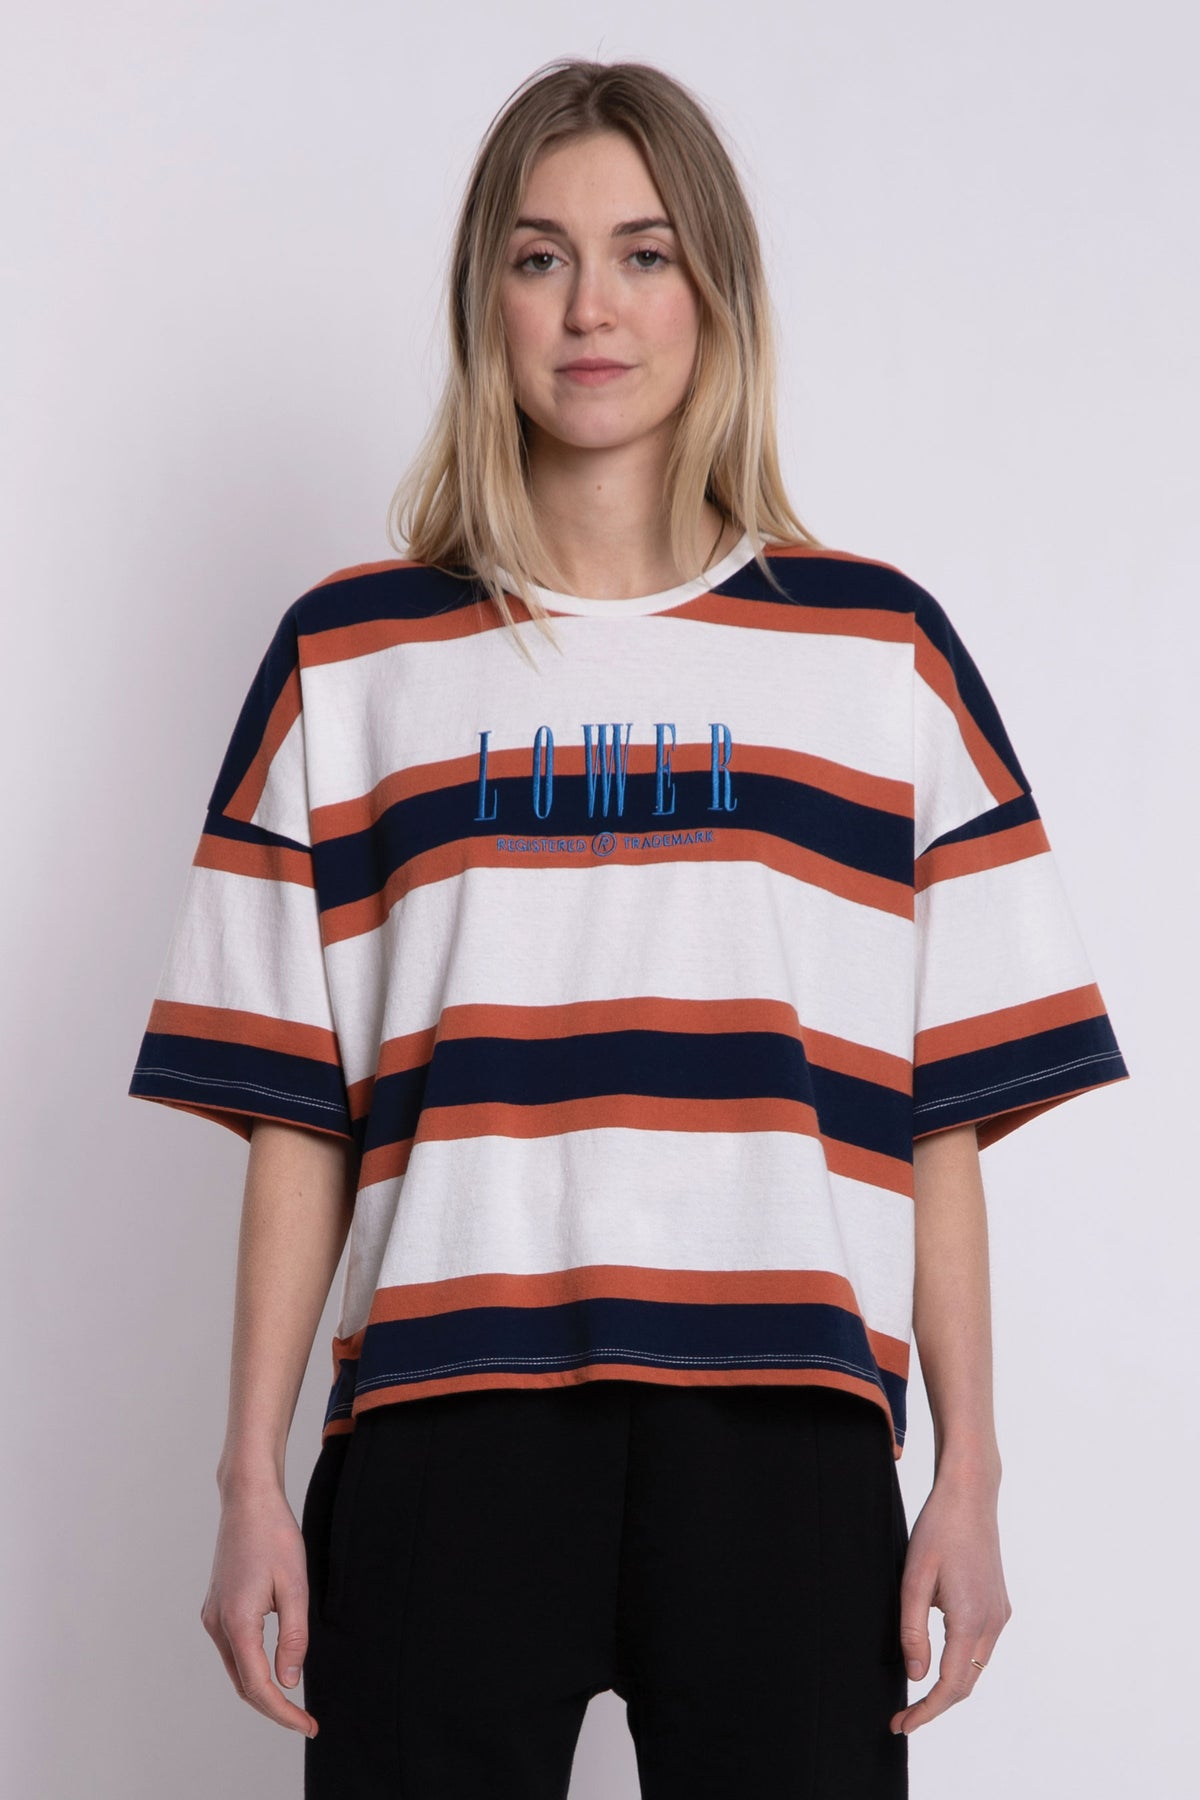 Matilda Oversized Tee - Brown/Navy/White